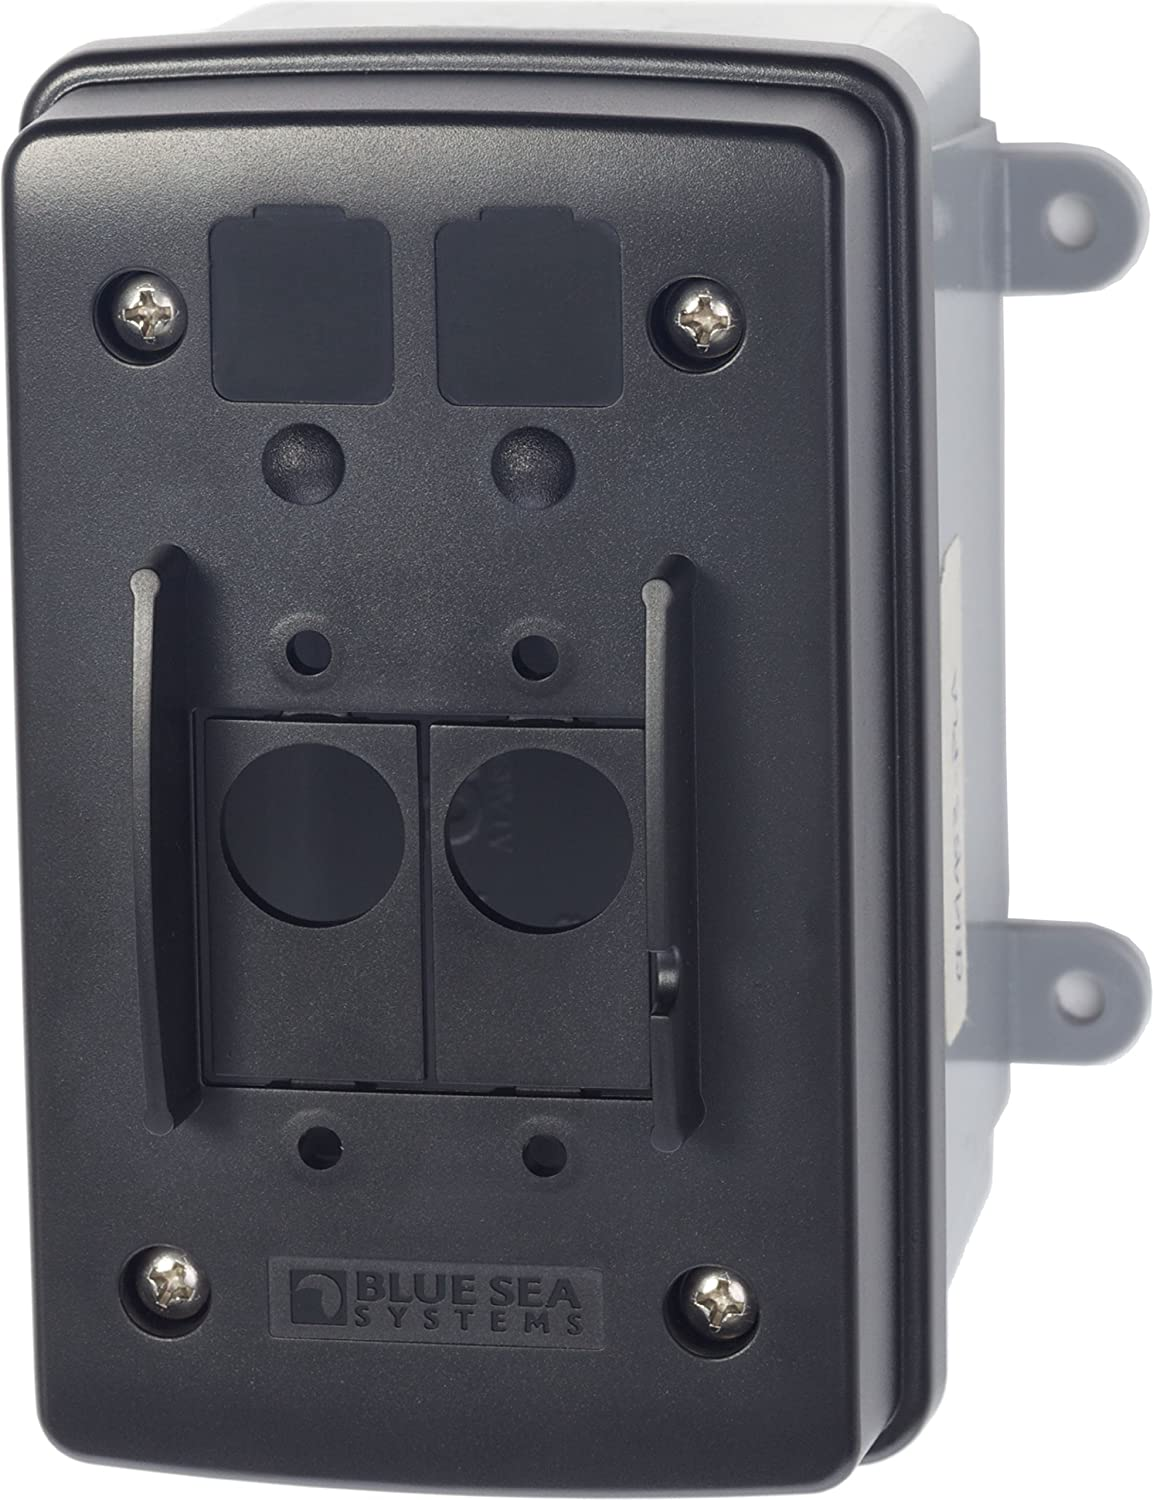 Blue Sea Systems Circuit Breaker Enclosure Boating 7237 Black Toggle 30 Amp Double Pole Aseries Electrical Equipment Sports Outdoors